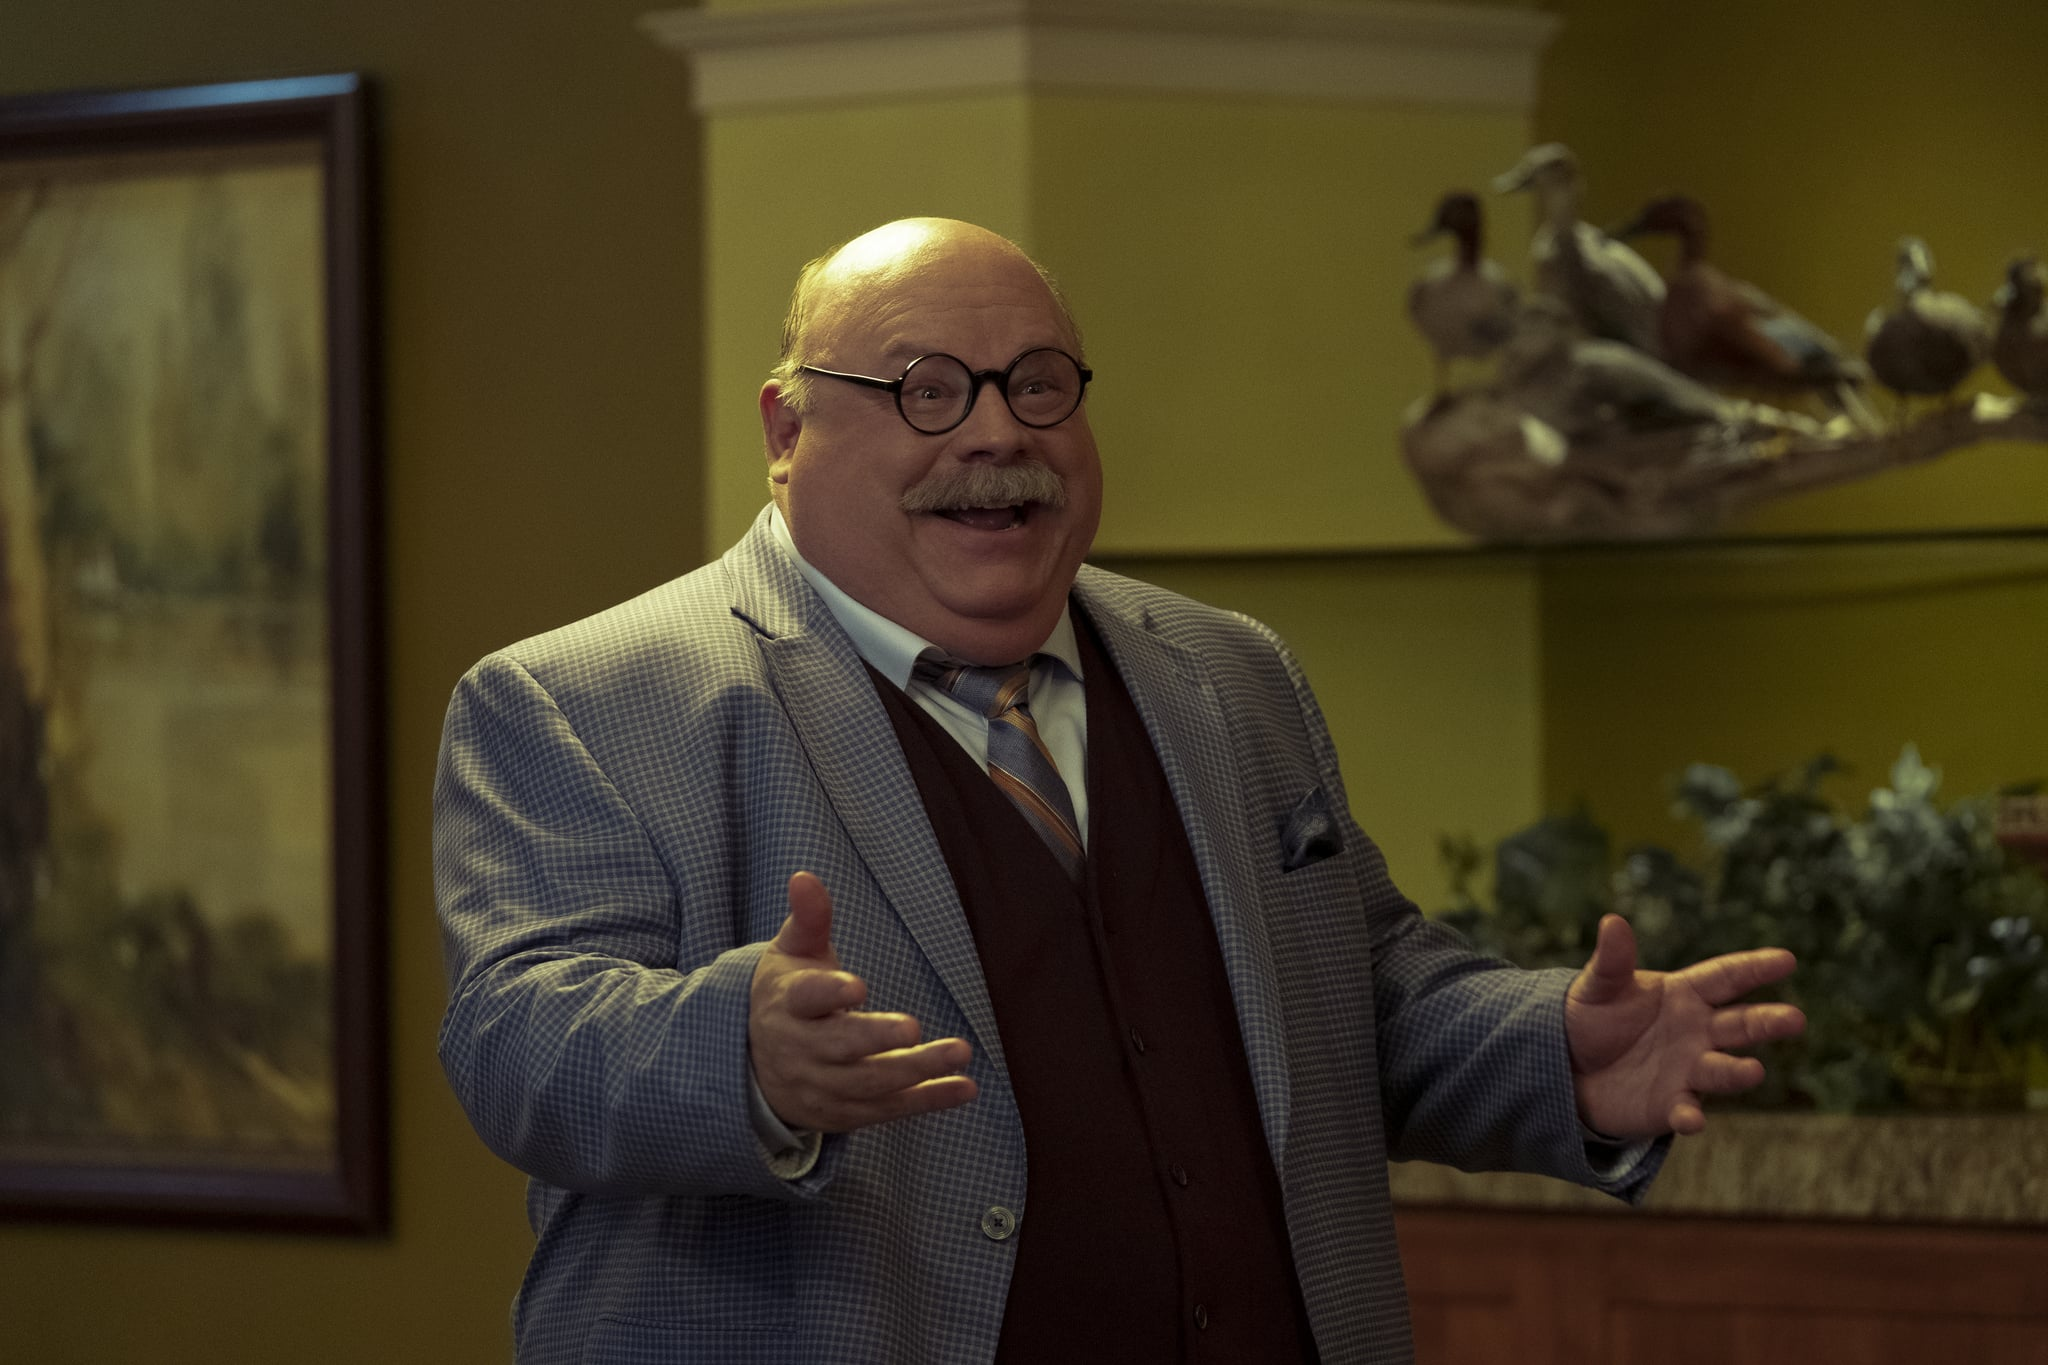 THE PROM (L to R) KEVIN CHAMBERLIN as SHELDON in THE PROM. Cr. MELINDA SUE GORDON/NETFLIX © 2020